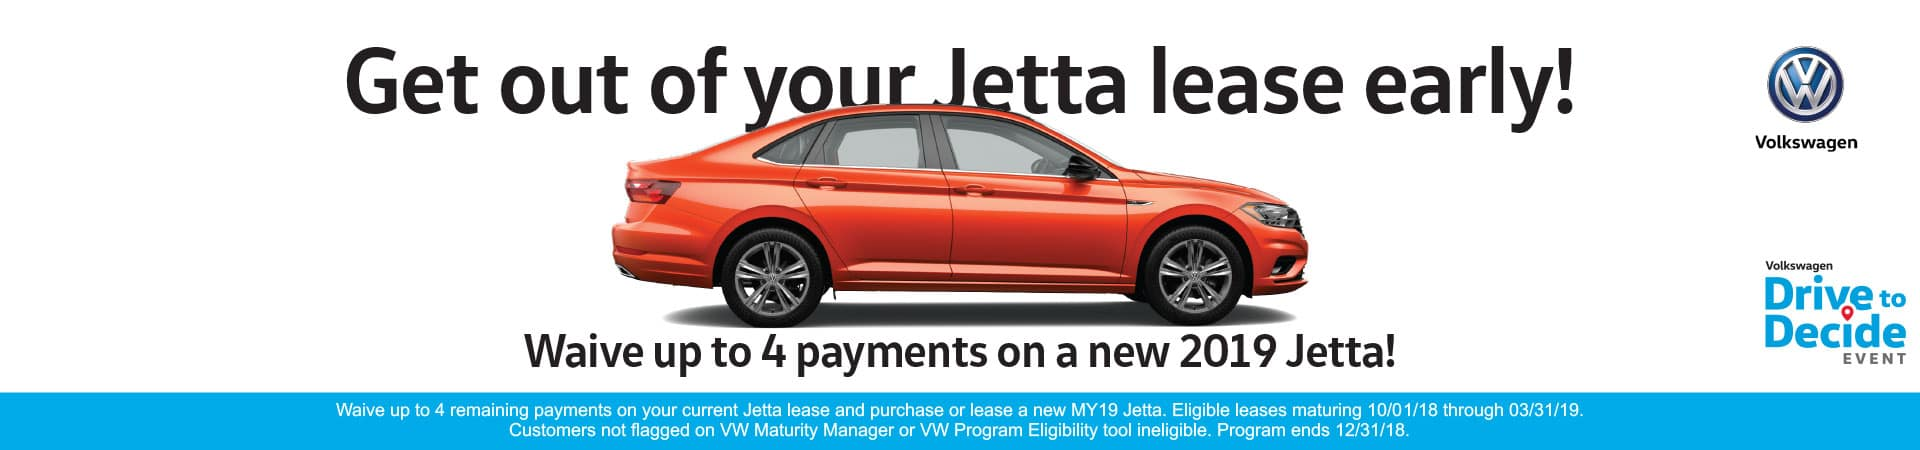 Get out of your Jetta lease early!